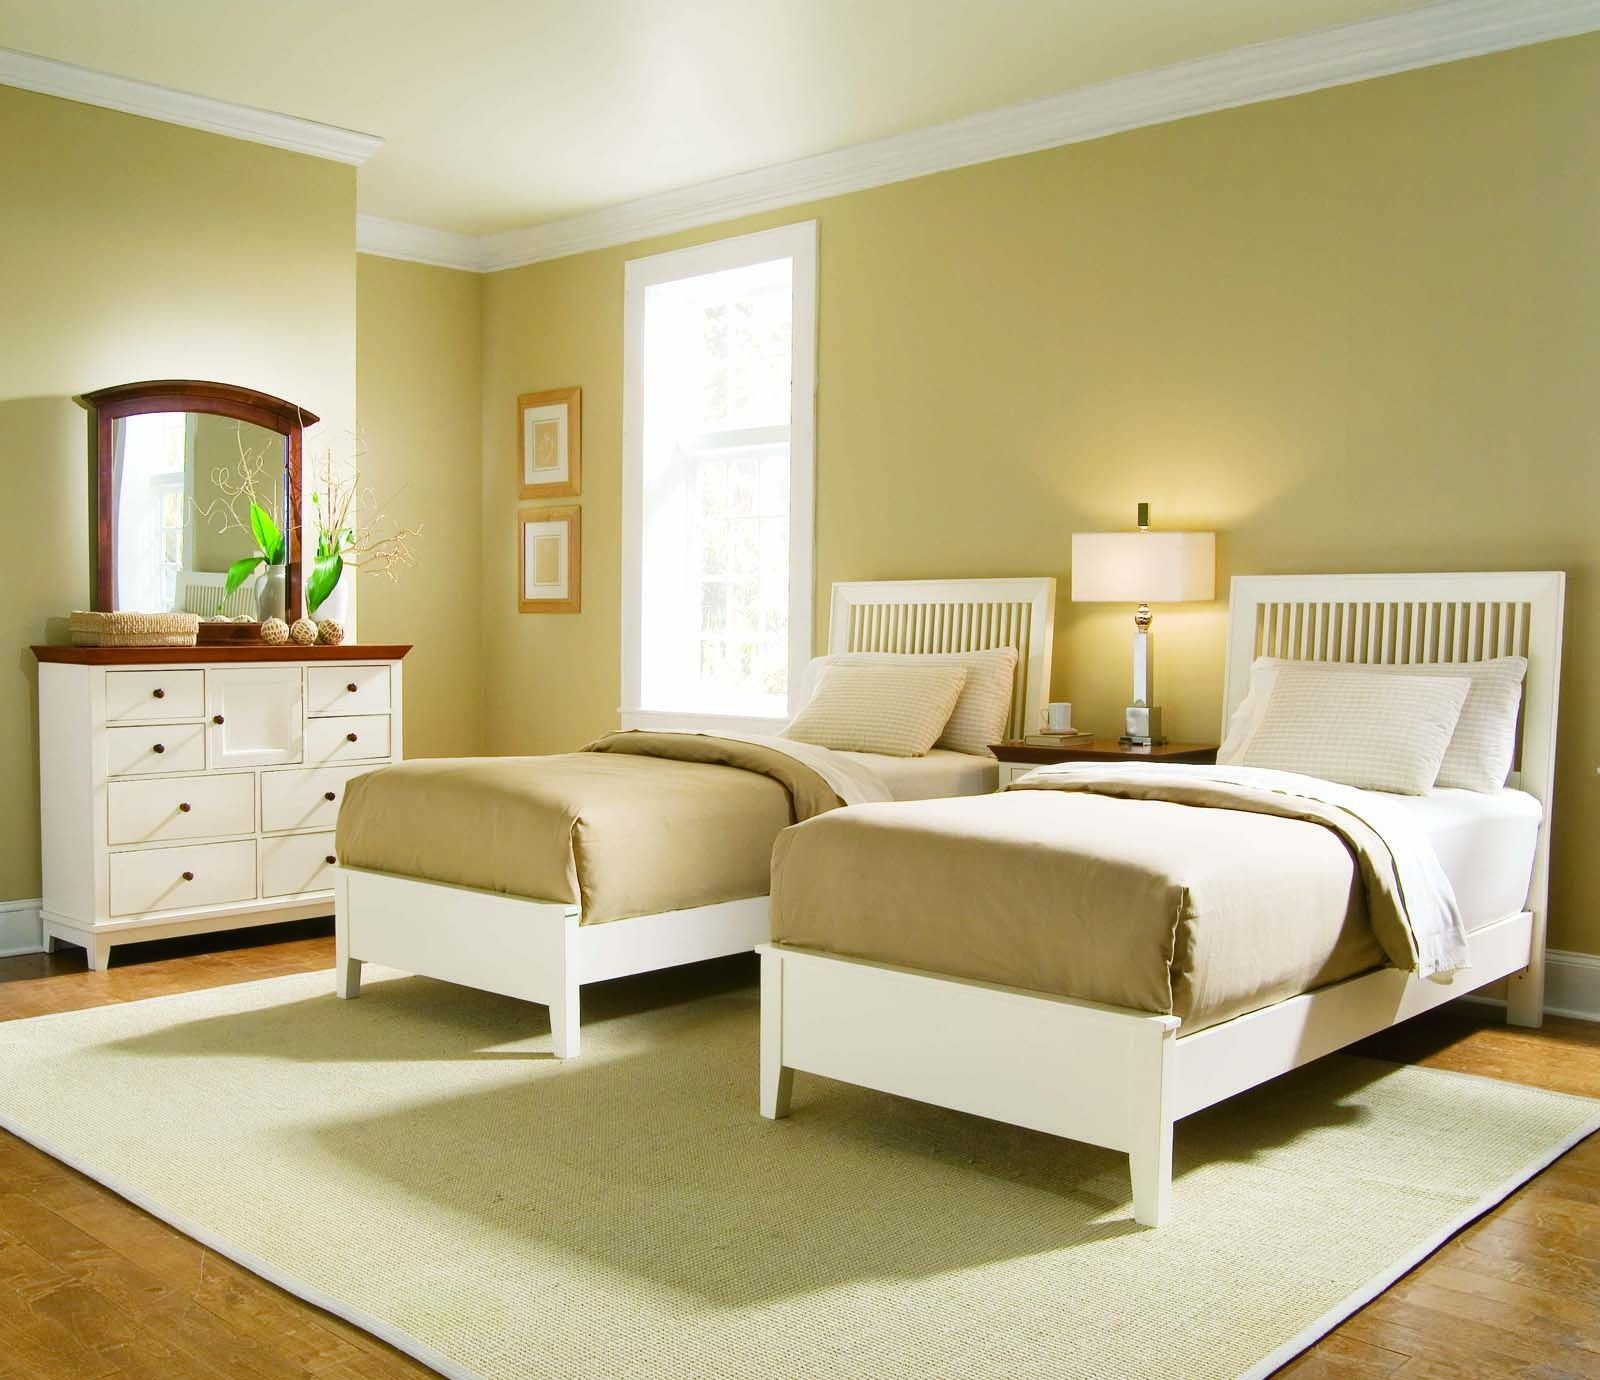 Simple Twin Bedroom Set Idea For Girls With Golden Brown Wall Paint Color  And Fake Wood Flooring And Light Brown Area Rug Also Two White Slat Beds  And White ... Part 17